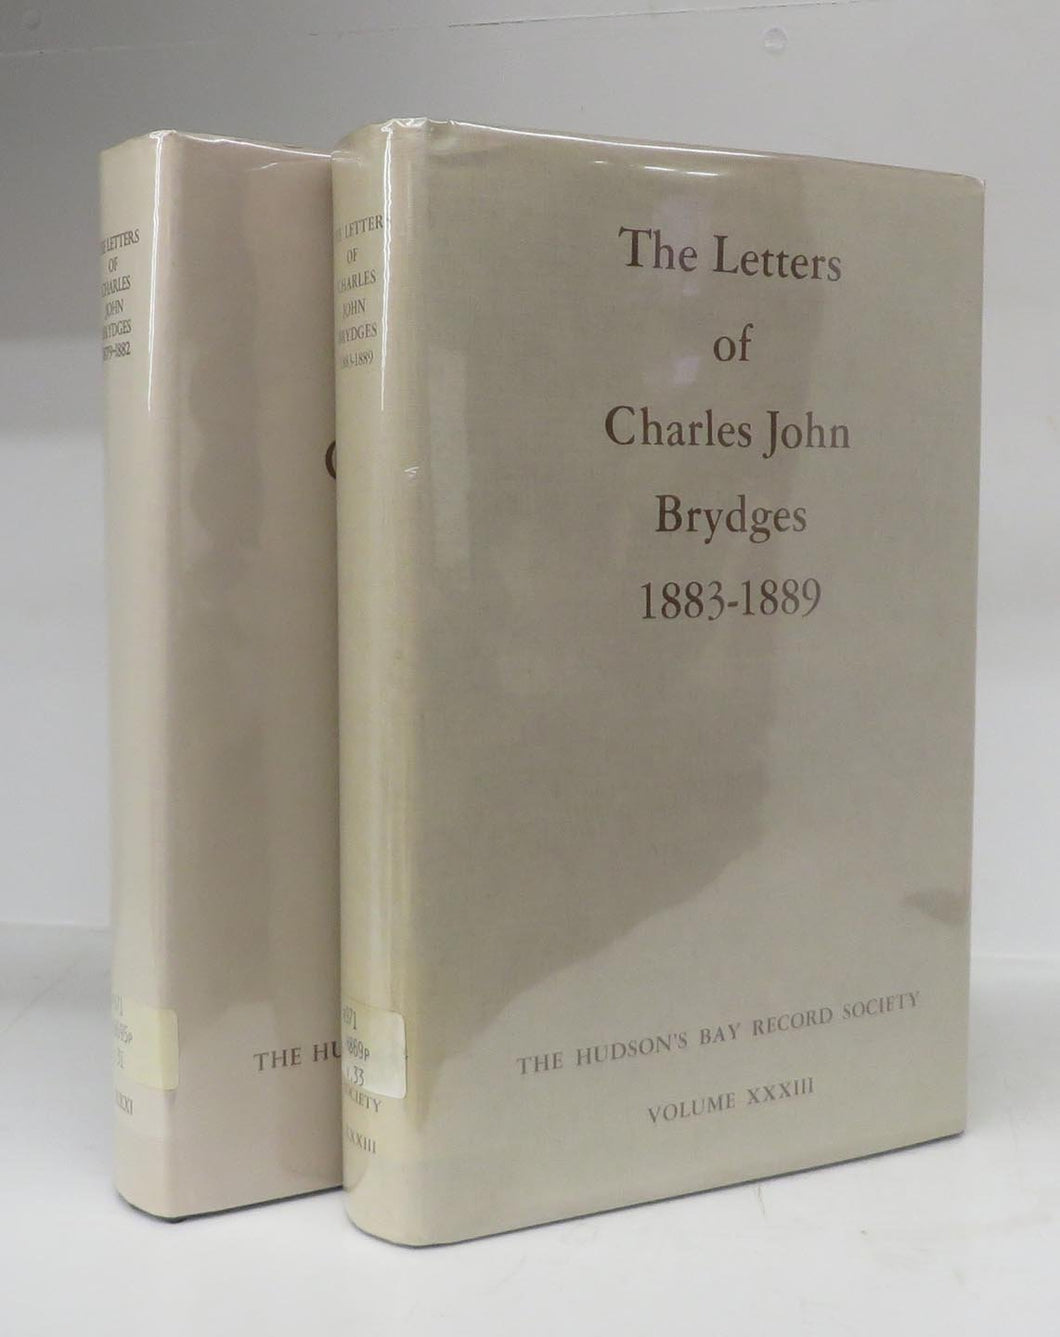 The Letters of Charles John Brydges 1879-1882, 1883-1889 (2 Volumes)